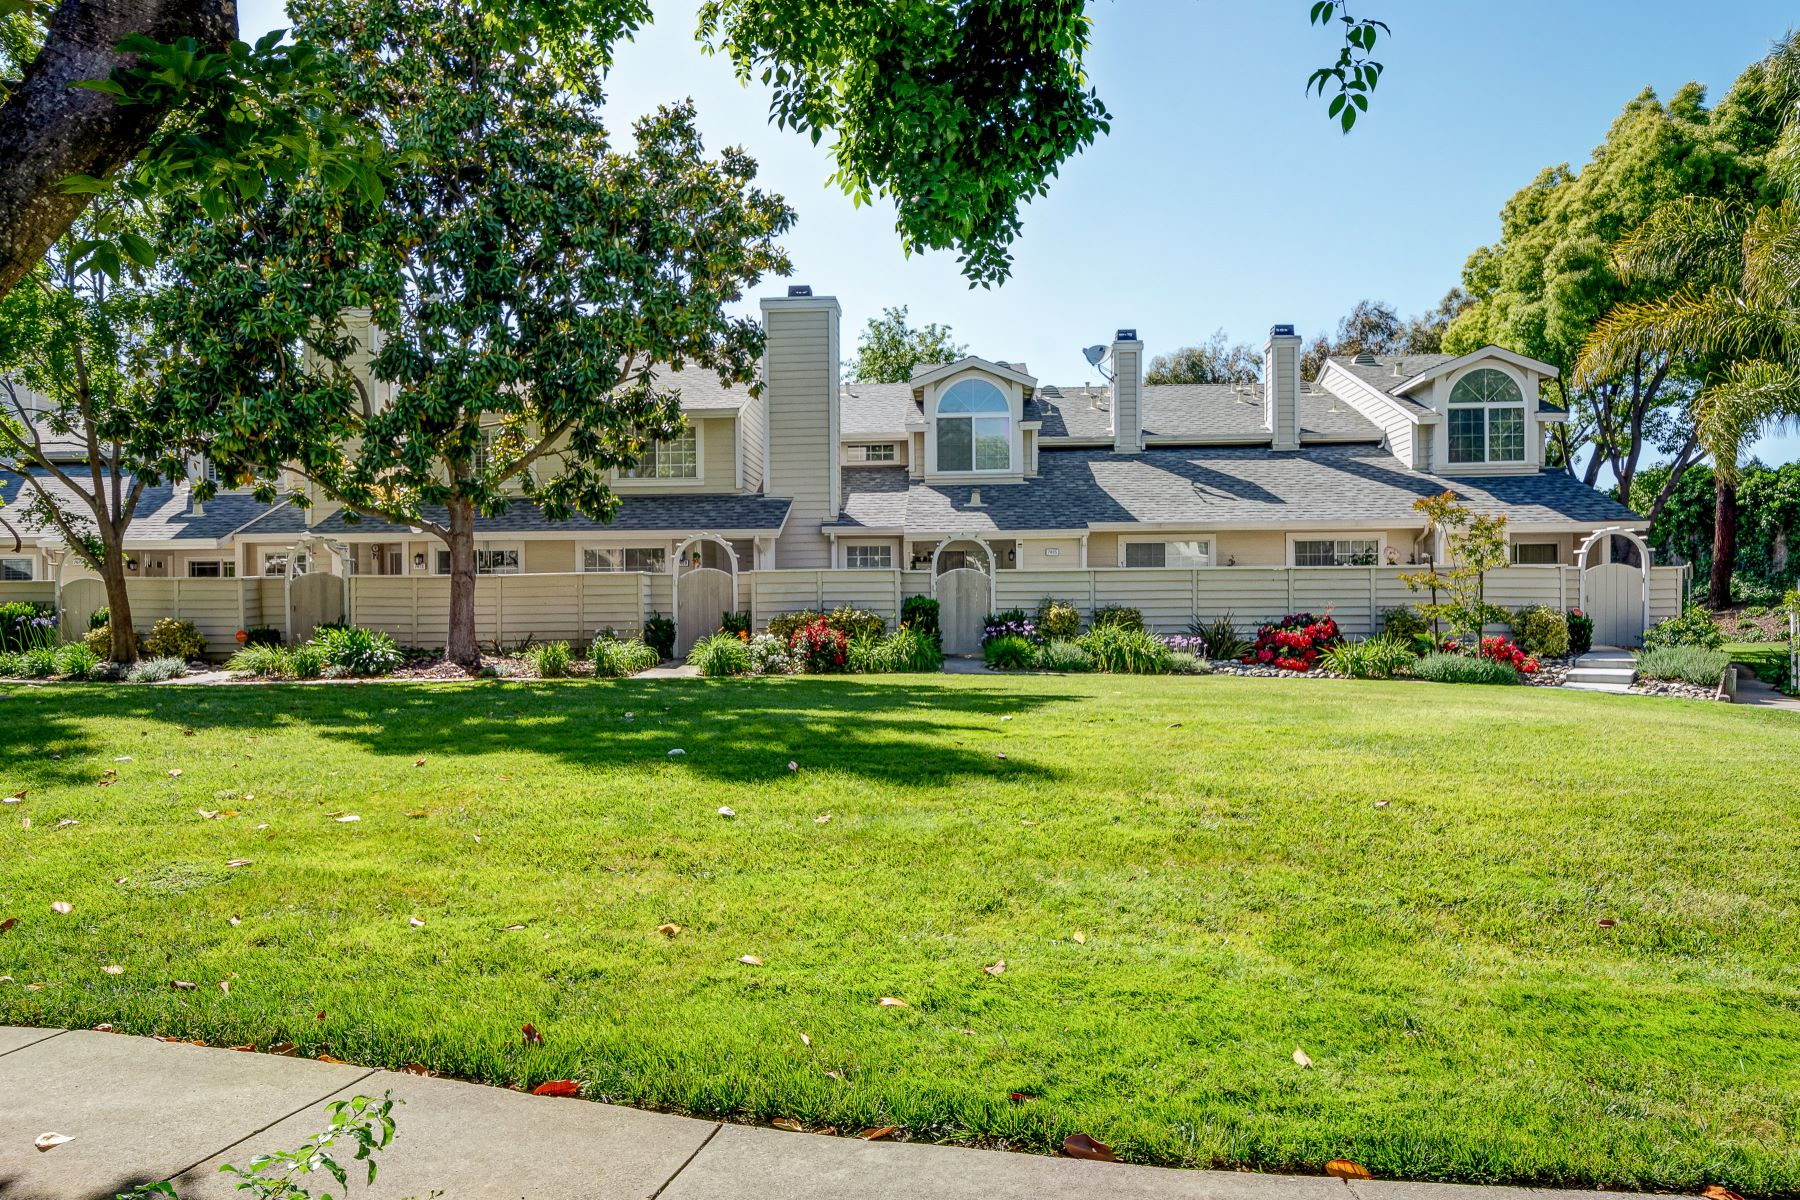 townhouses for Sale at 7365 Stonedale Drive, Pleasanton, CA 94588 7365 Stonedale Drive Pleasanton, California 94588 United States